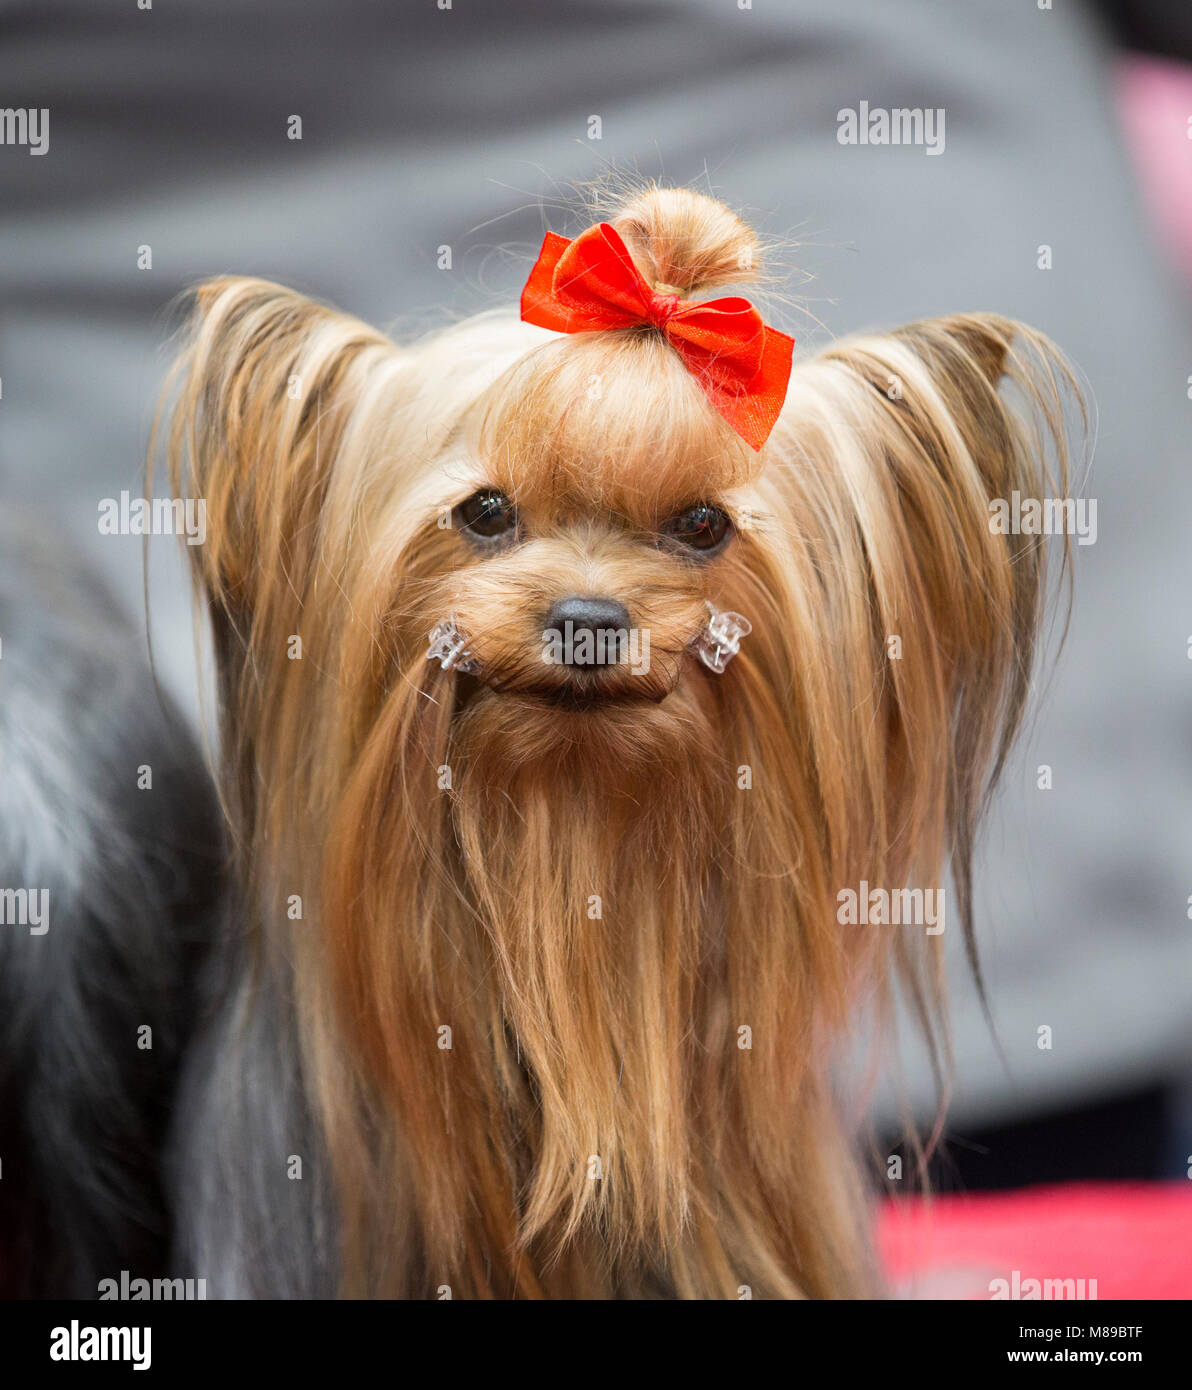 A Yorkshire Terrier groomed and ready to be judged at Crufts dog show - Stock Image